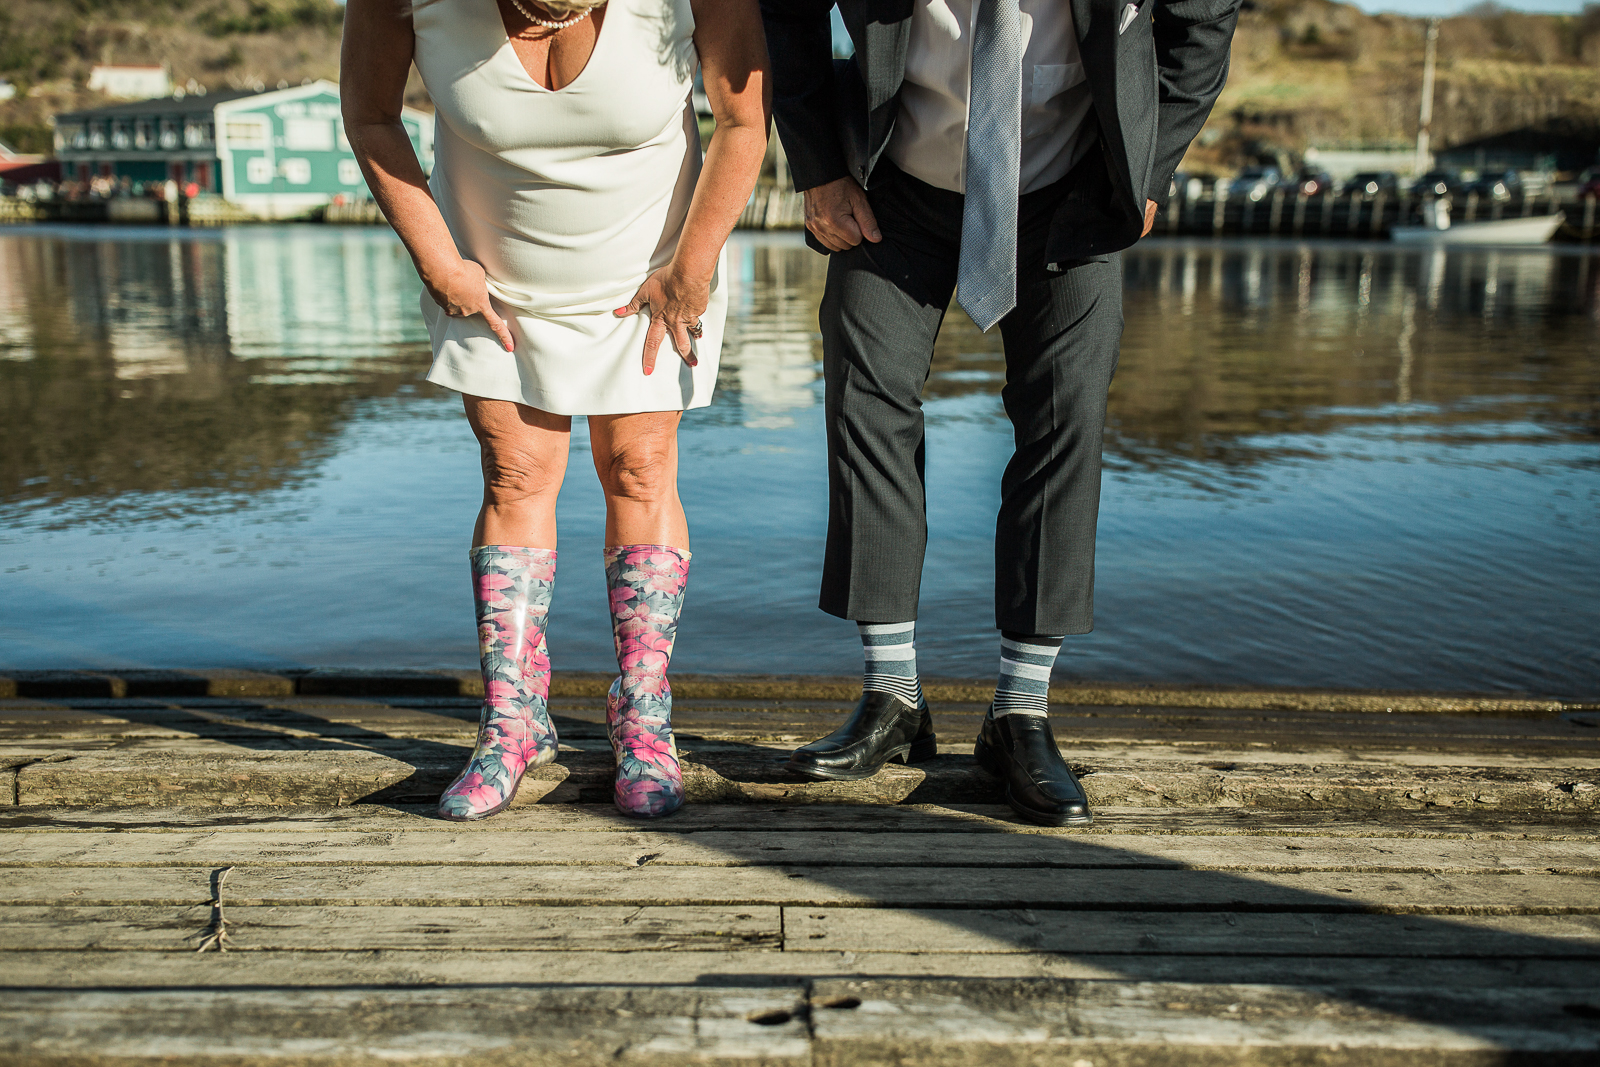 quidi-vidi-wedding-photographer-michelle-don-50.jpg